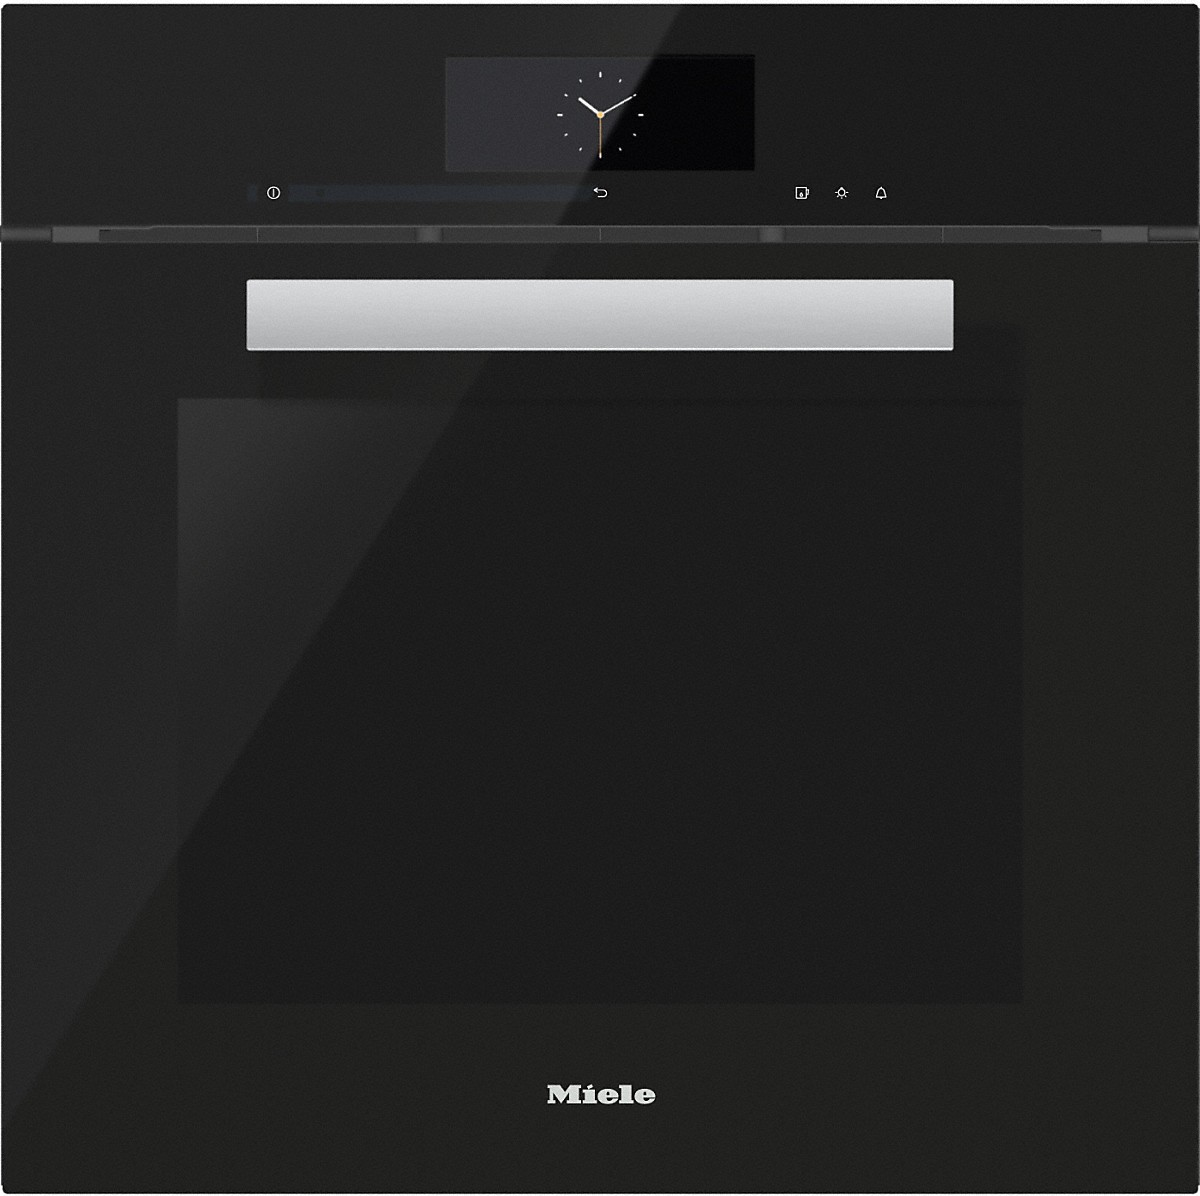 miele dgc 6865 xxl steam combination oven with fully fledged oven function. Black Bedroom Furniture Sets. Home Design Ideas